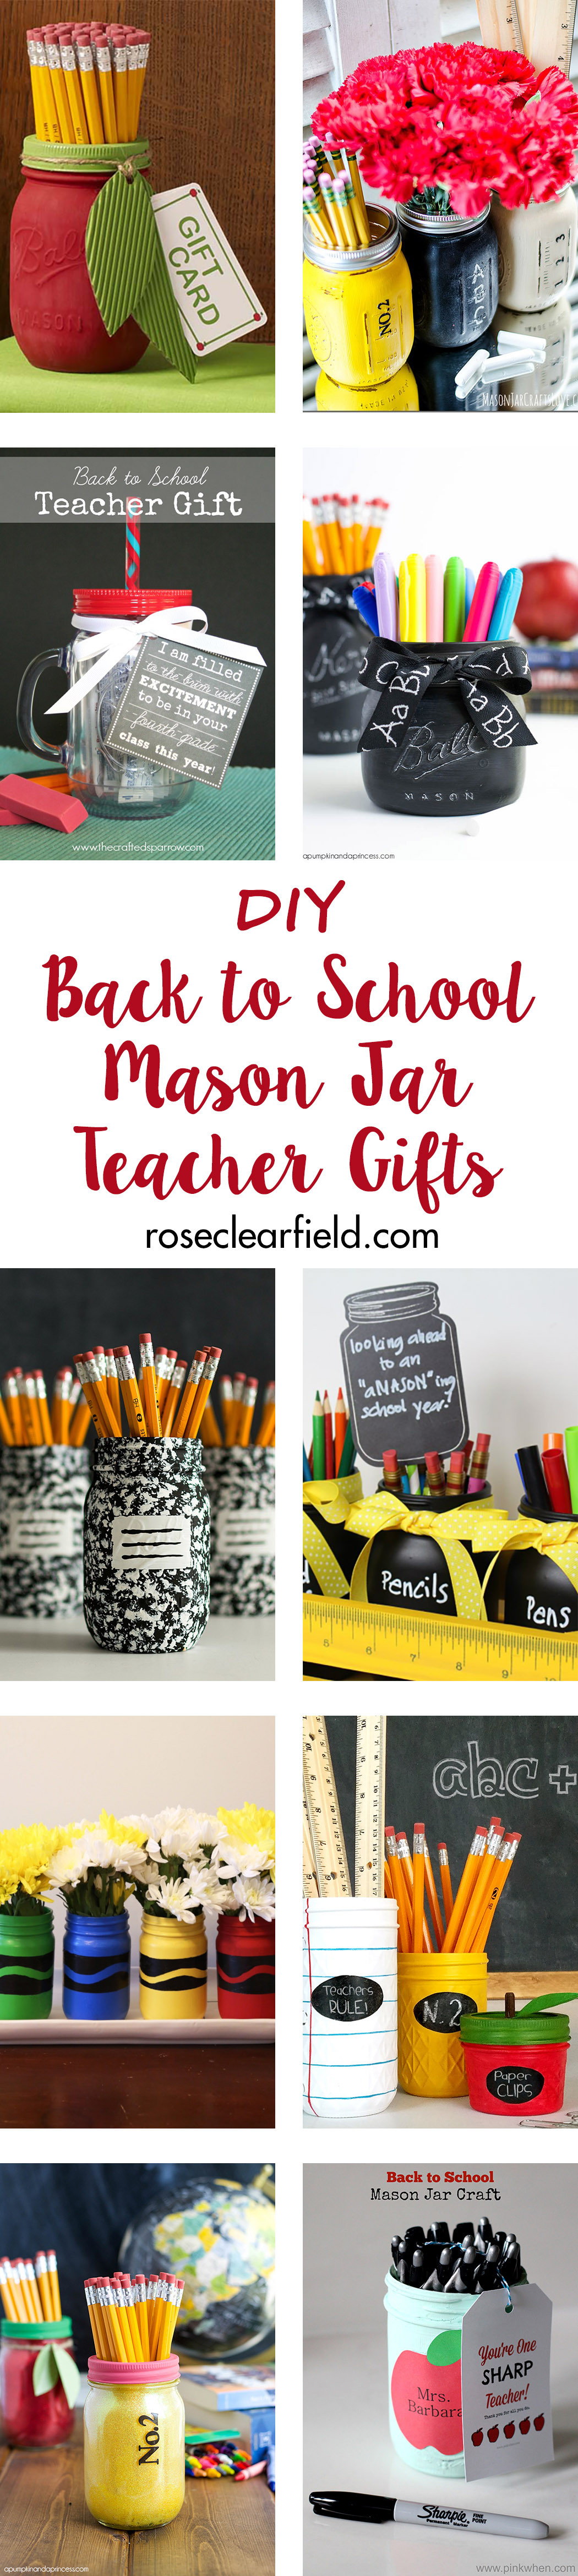 DIY Back to School Mason Jar Teacher Gifts | https://www.roseclearfield.com